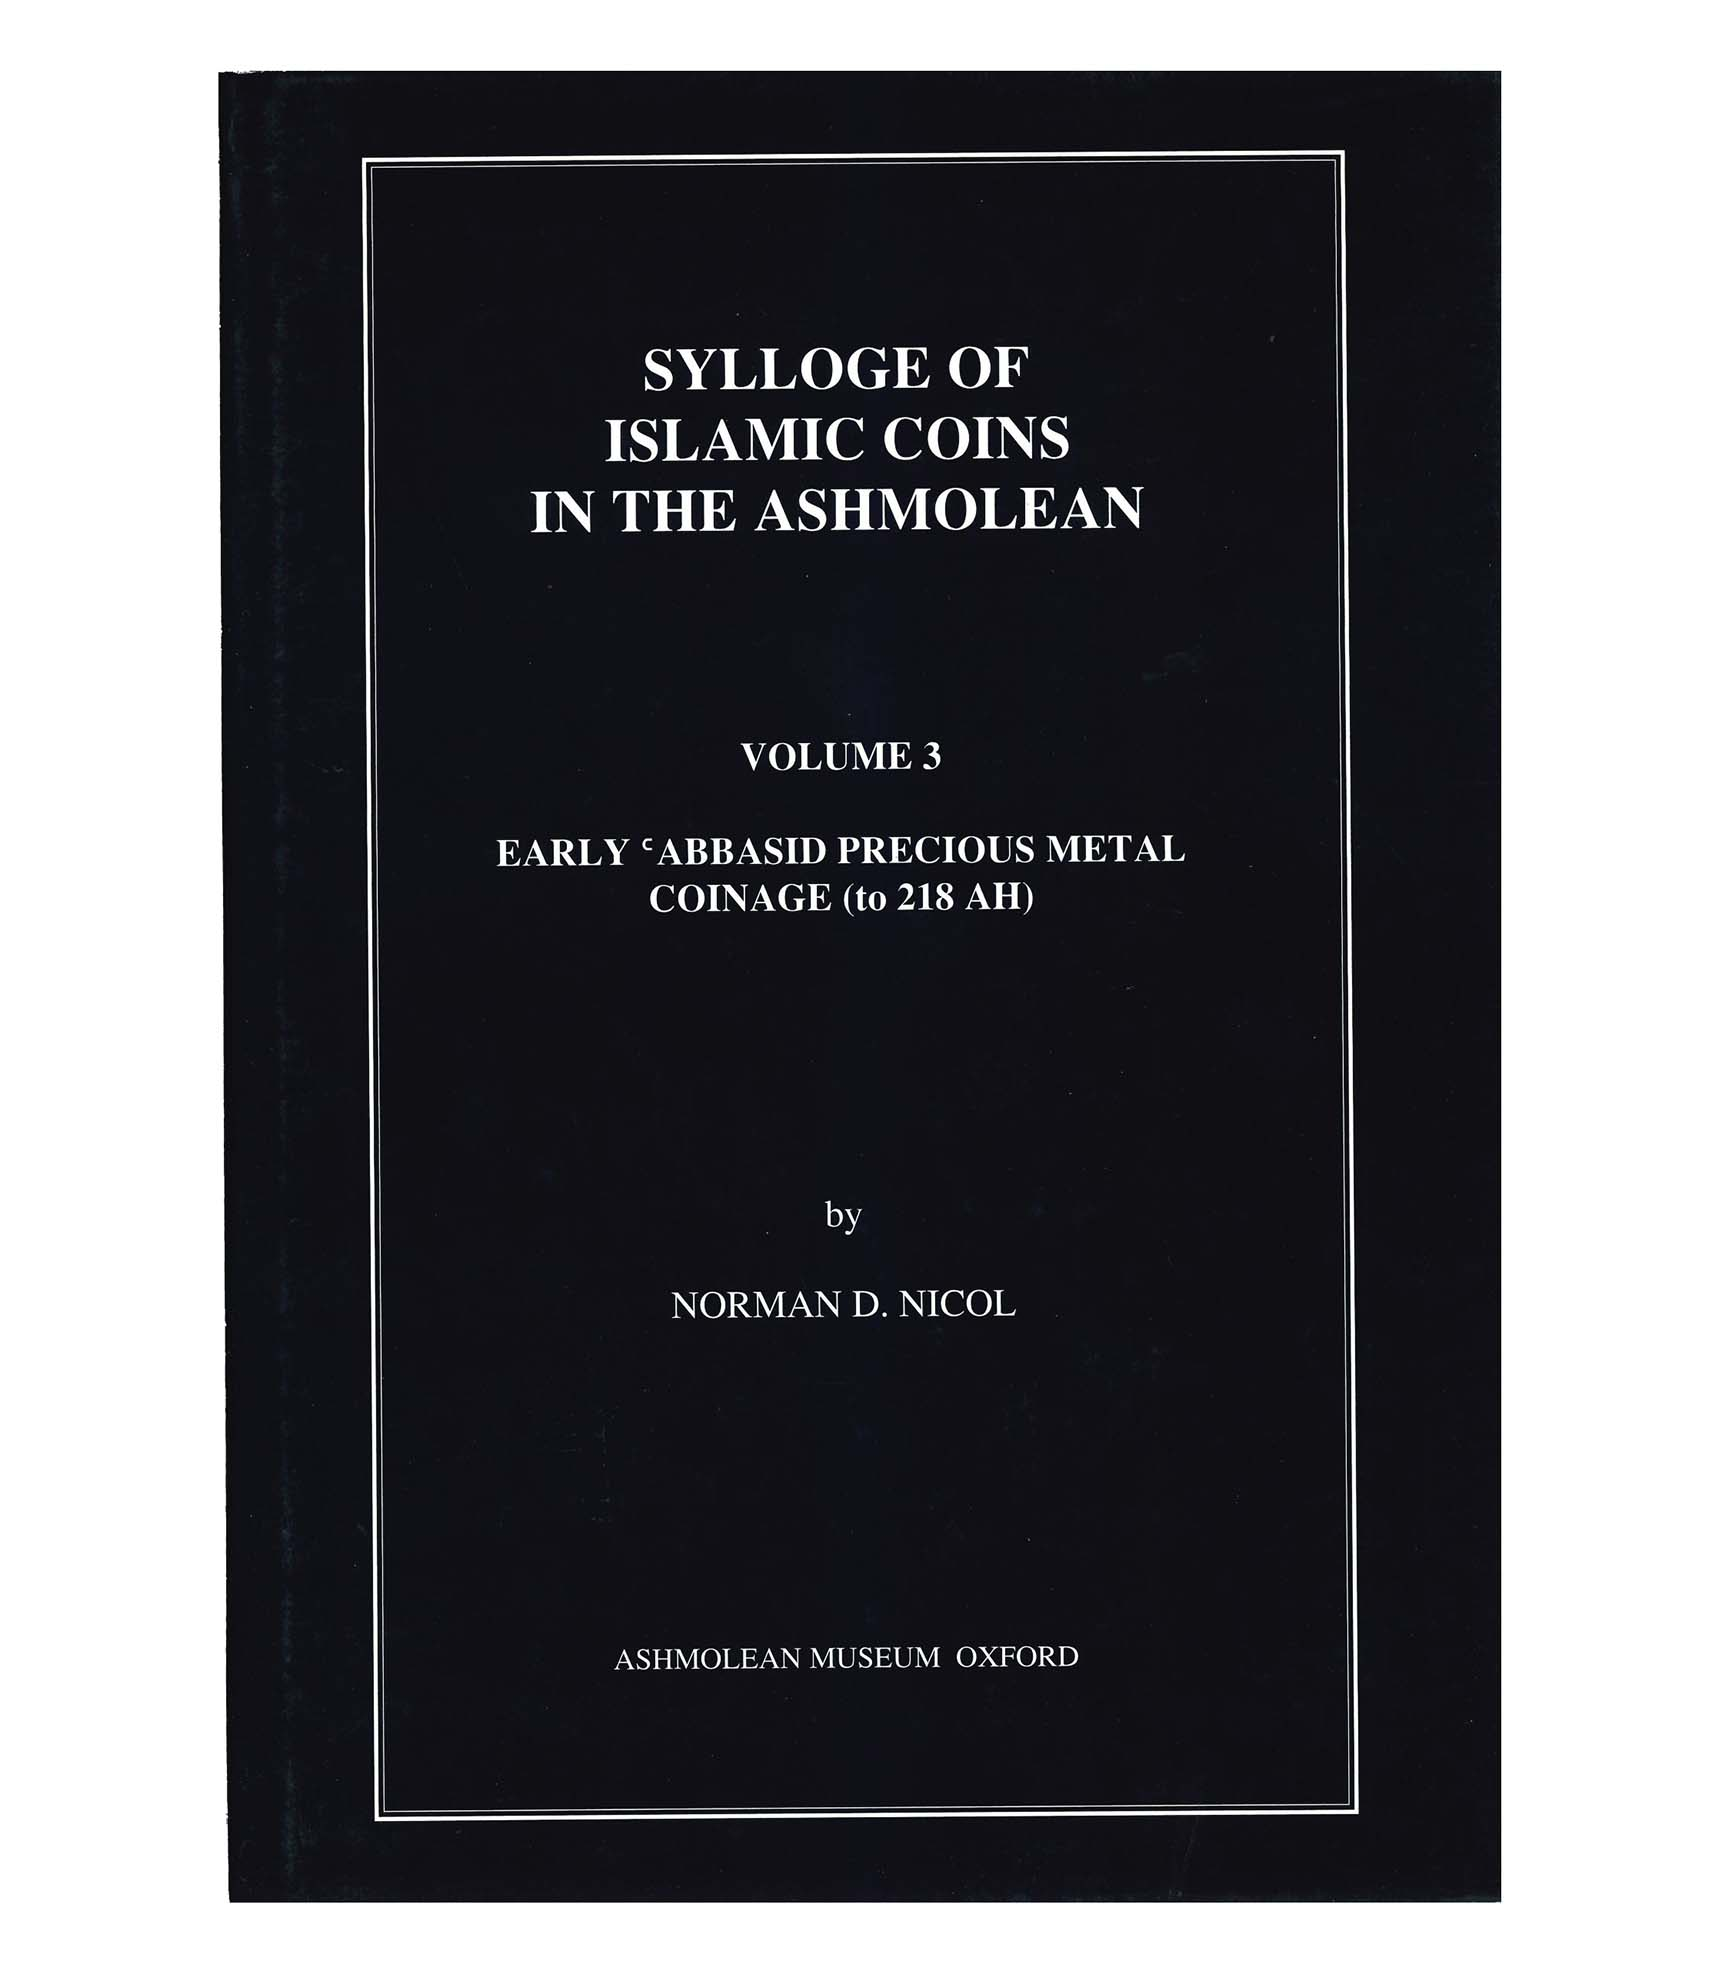 Sylloge of Islamic Coins in the Ashmolean. Volume 3